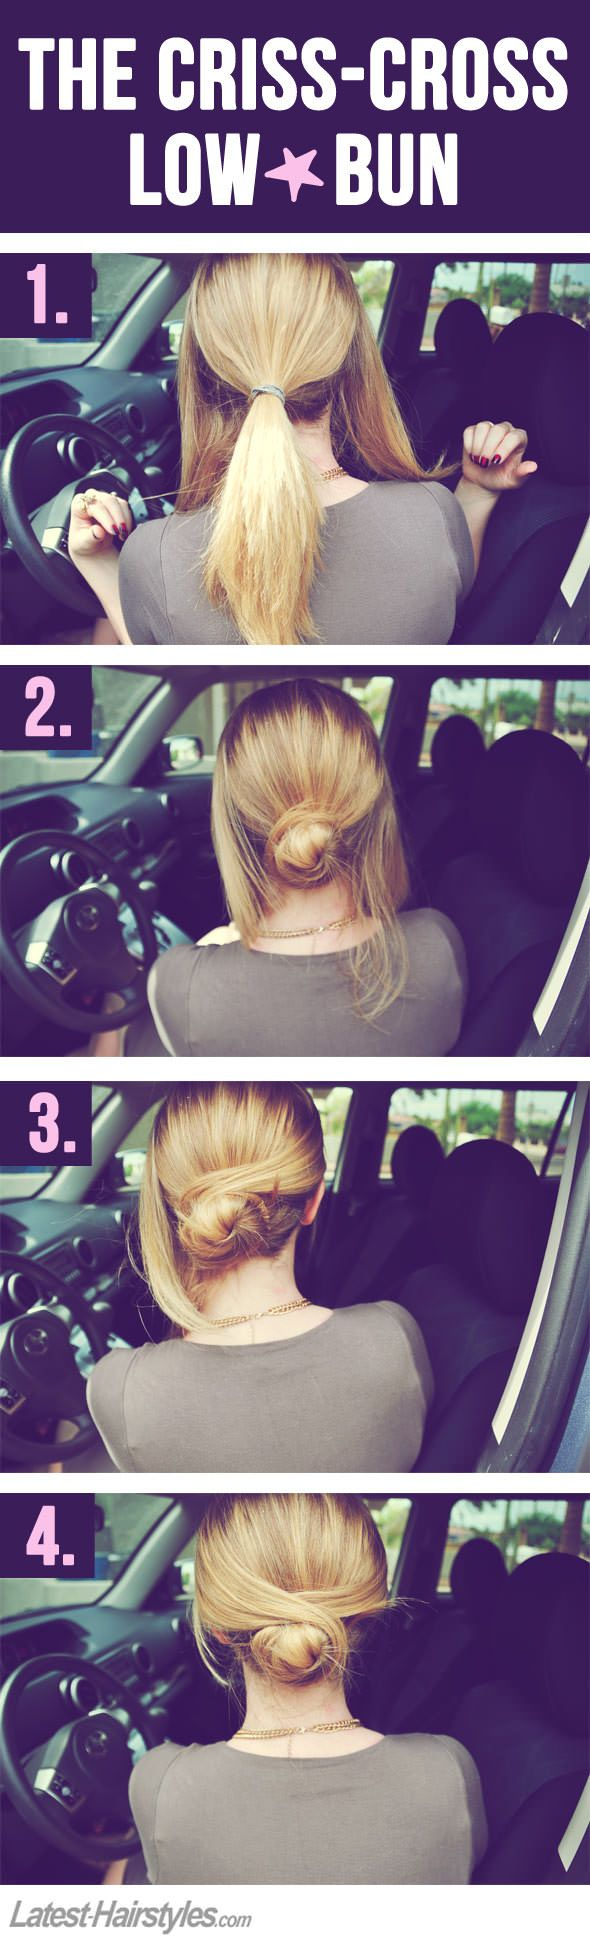 Easy bun cute and super chic you could do it very quickly